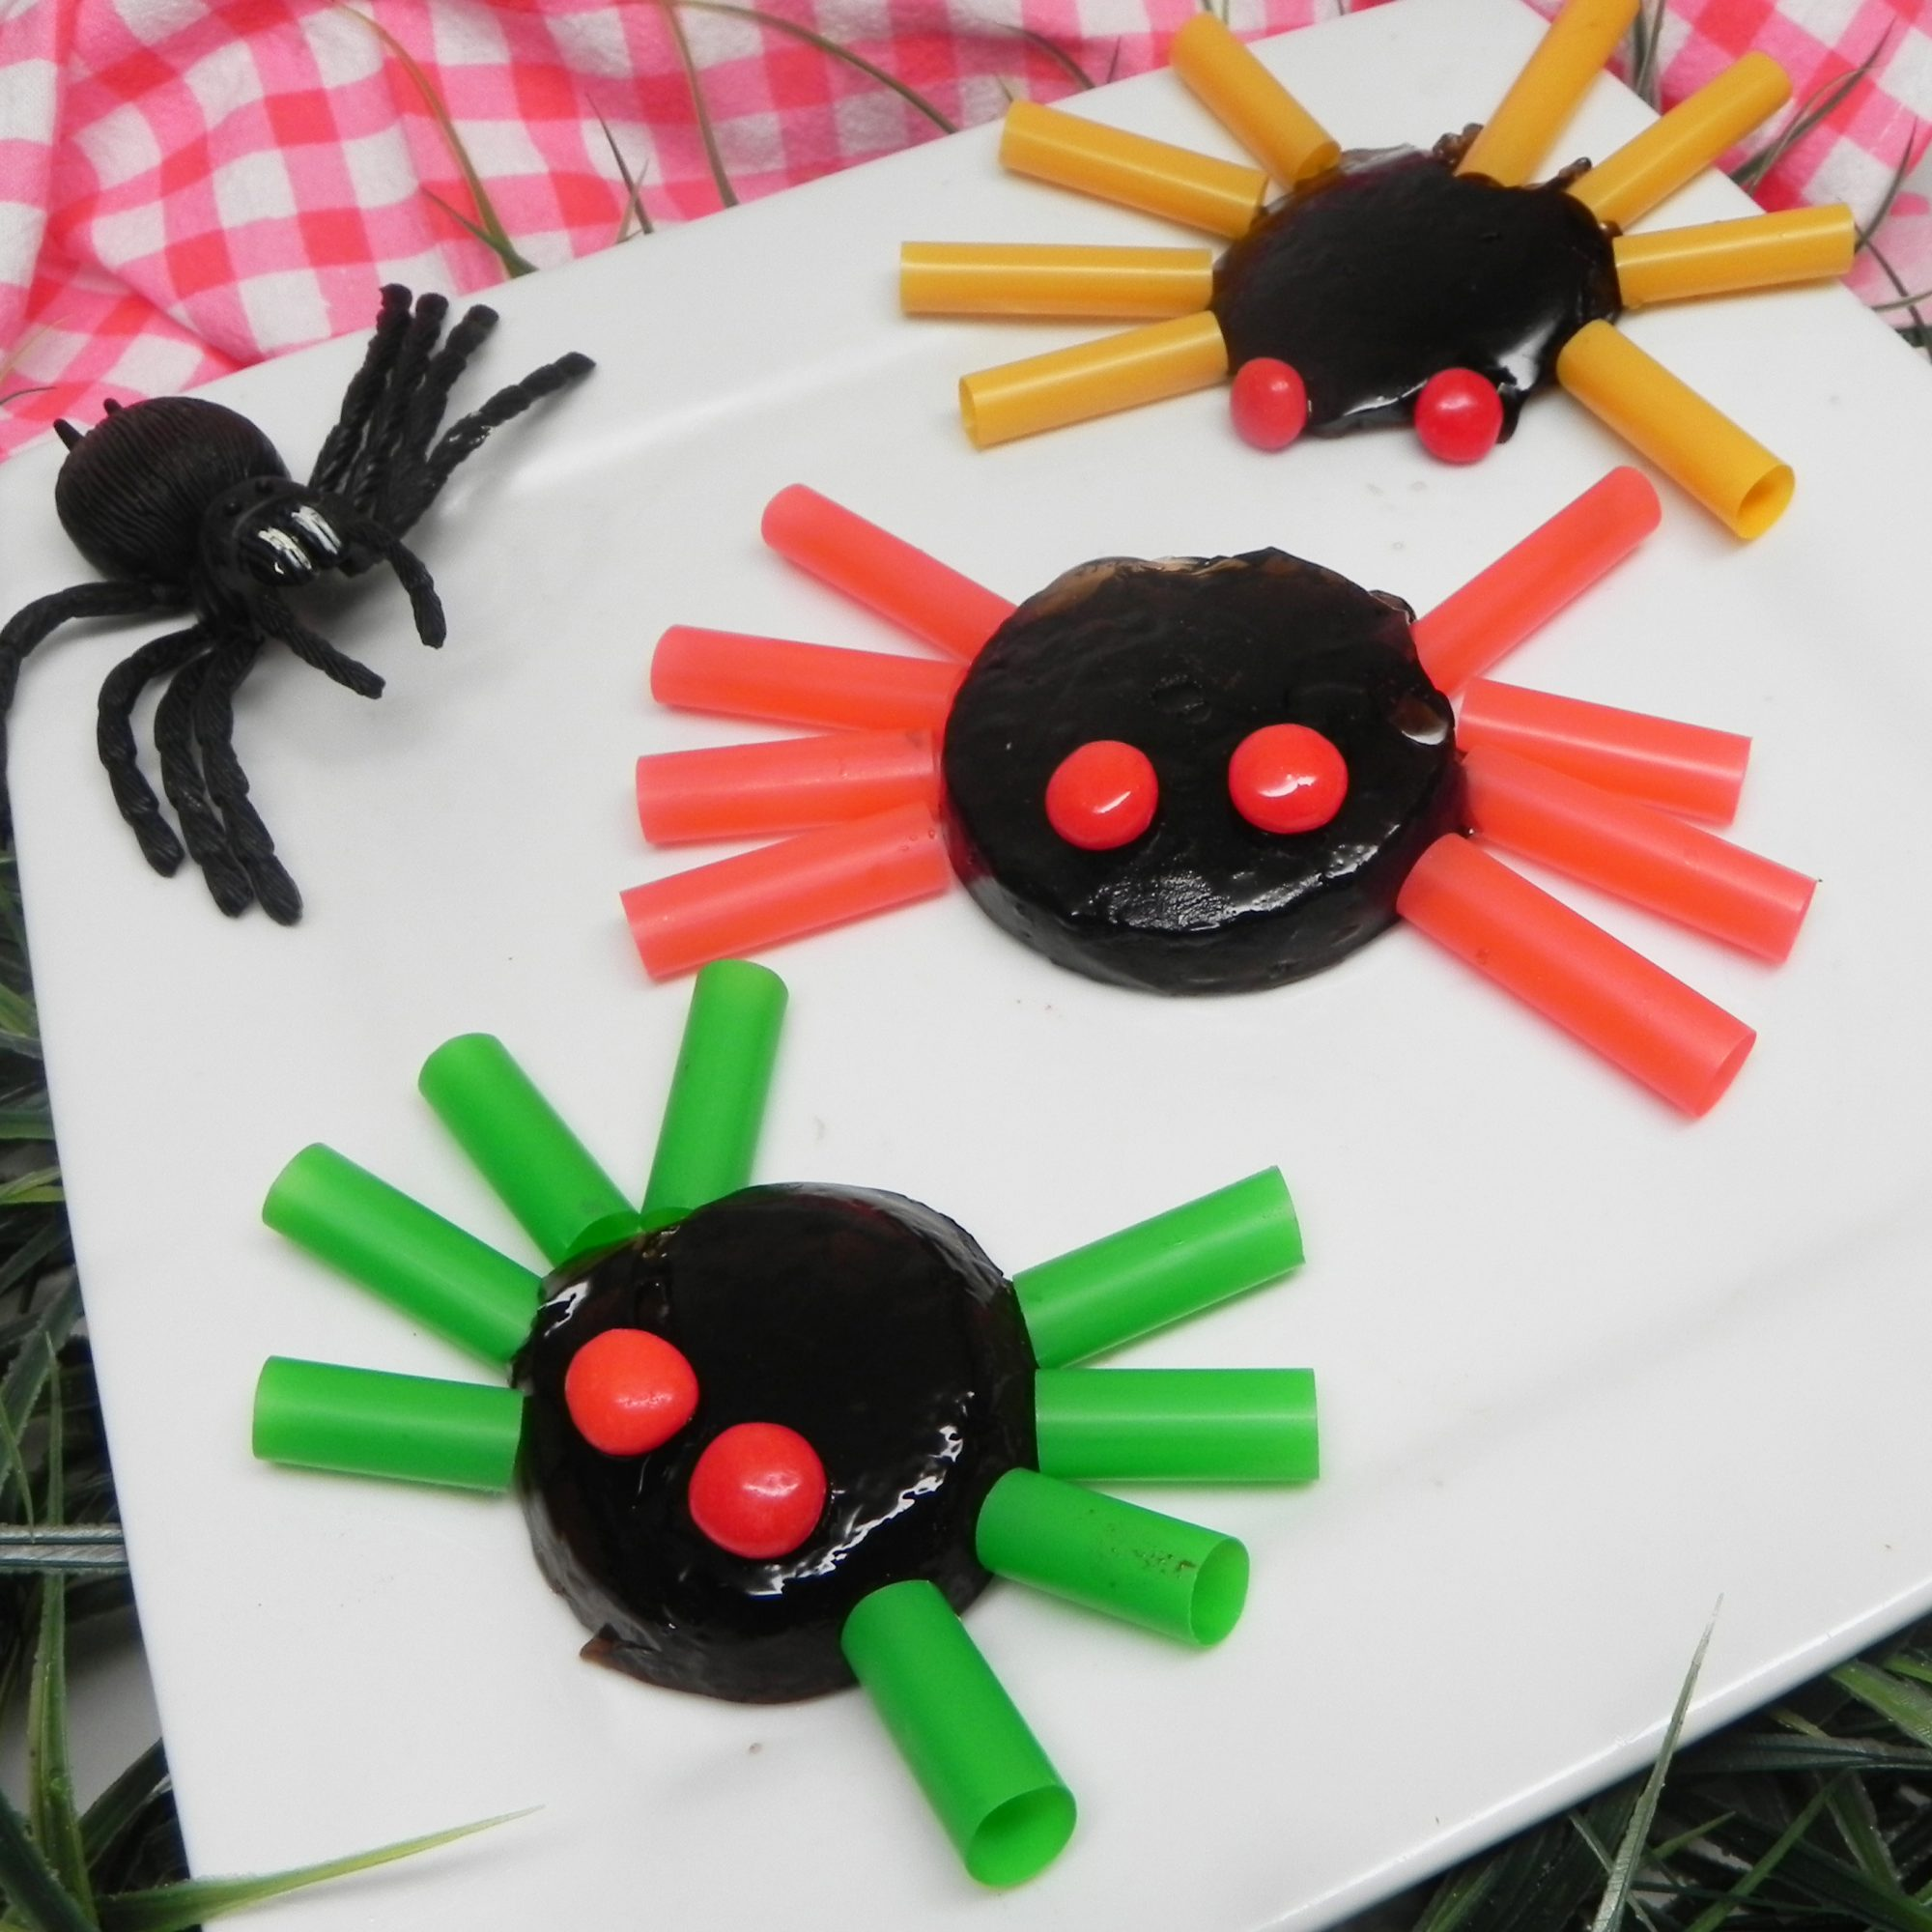 Gelatin spiders with colorful legs